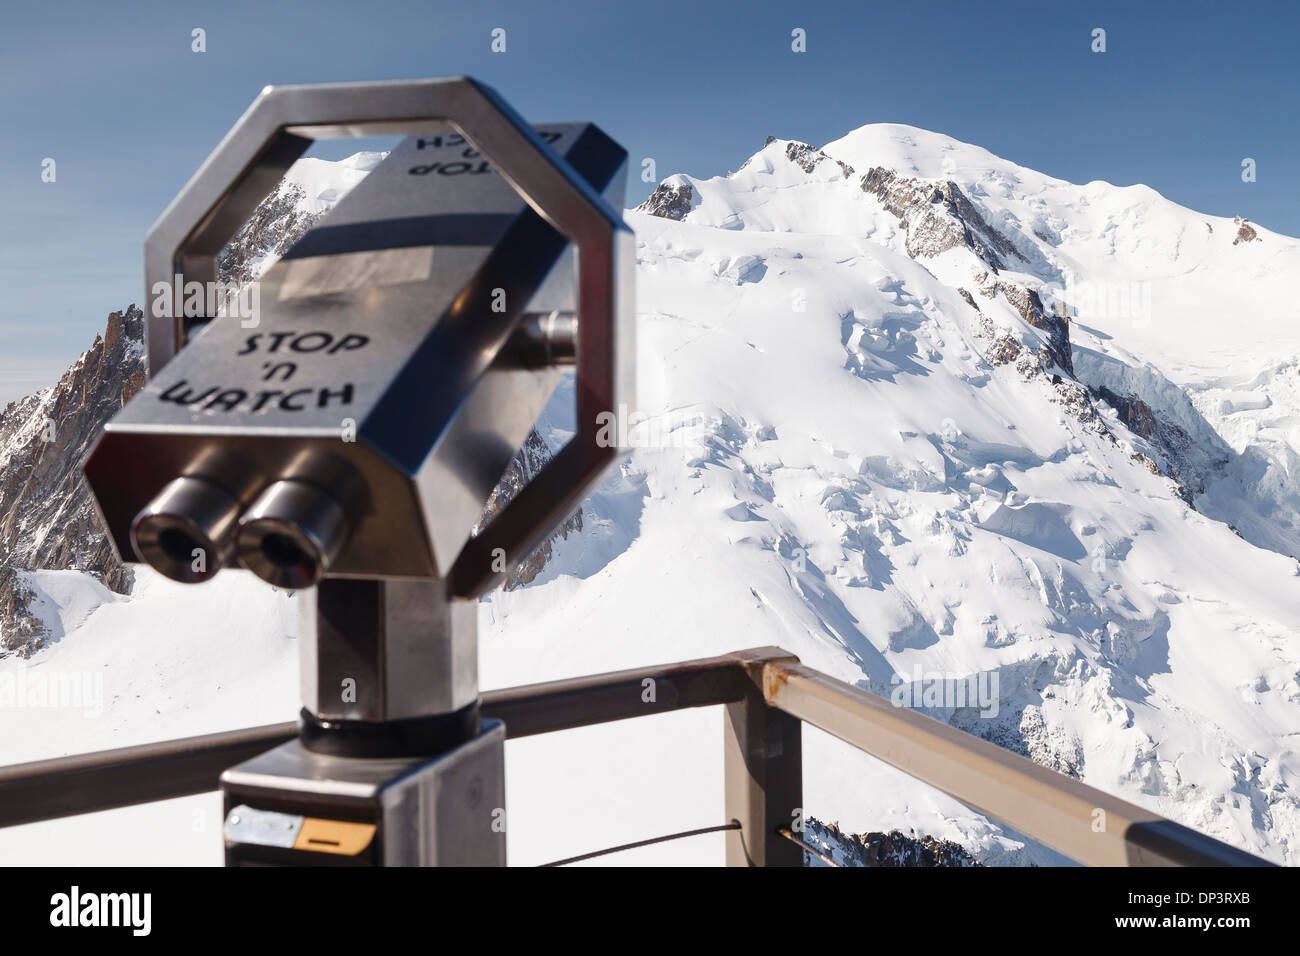 View, Aiguille du midi cable car - Panoramic Mont-Blanc Gondola, Chamonix, French Alps, Savoie, France, Europe - Stock Image